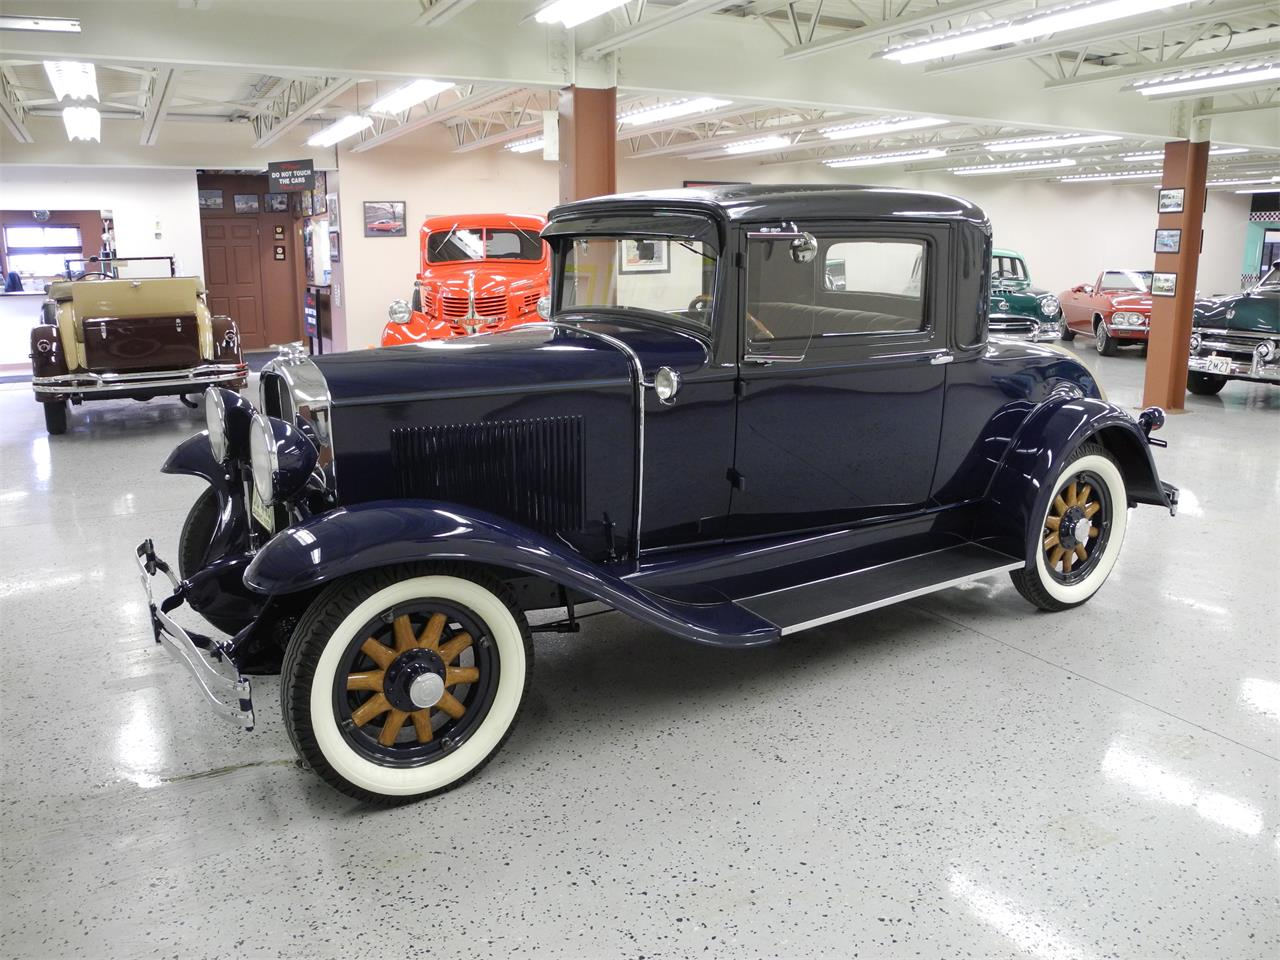 Sudbury Car Dealerships >> 1930 Buick Coupe for Sale | ClassicCars.com | CC-1039778